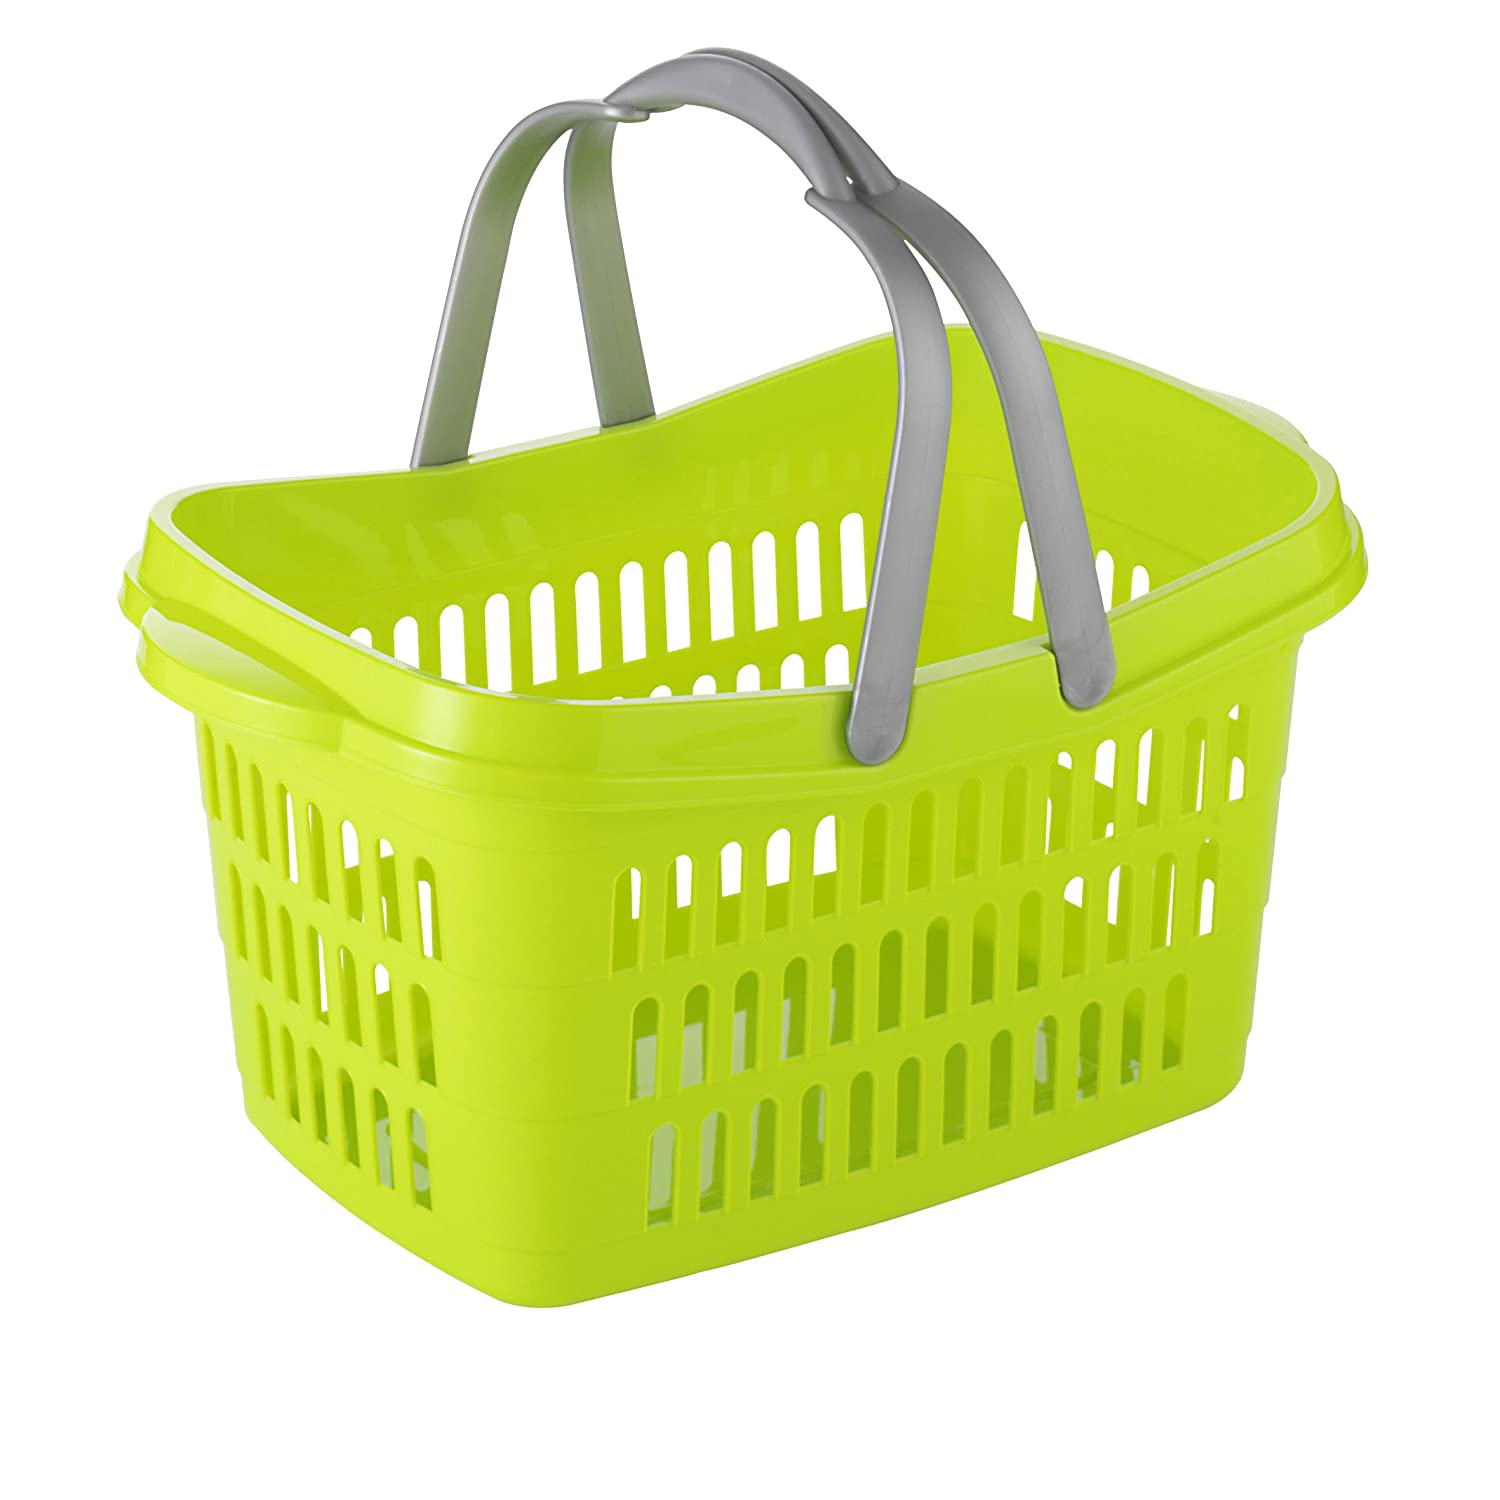 Axentia 2012 Edition 291597 Shopping Basket 48 x 29 x 24 cm Assorted Purple/Light Green